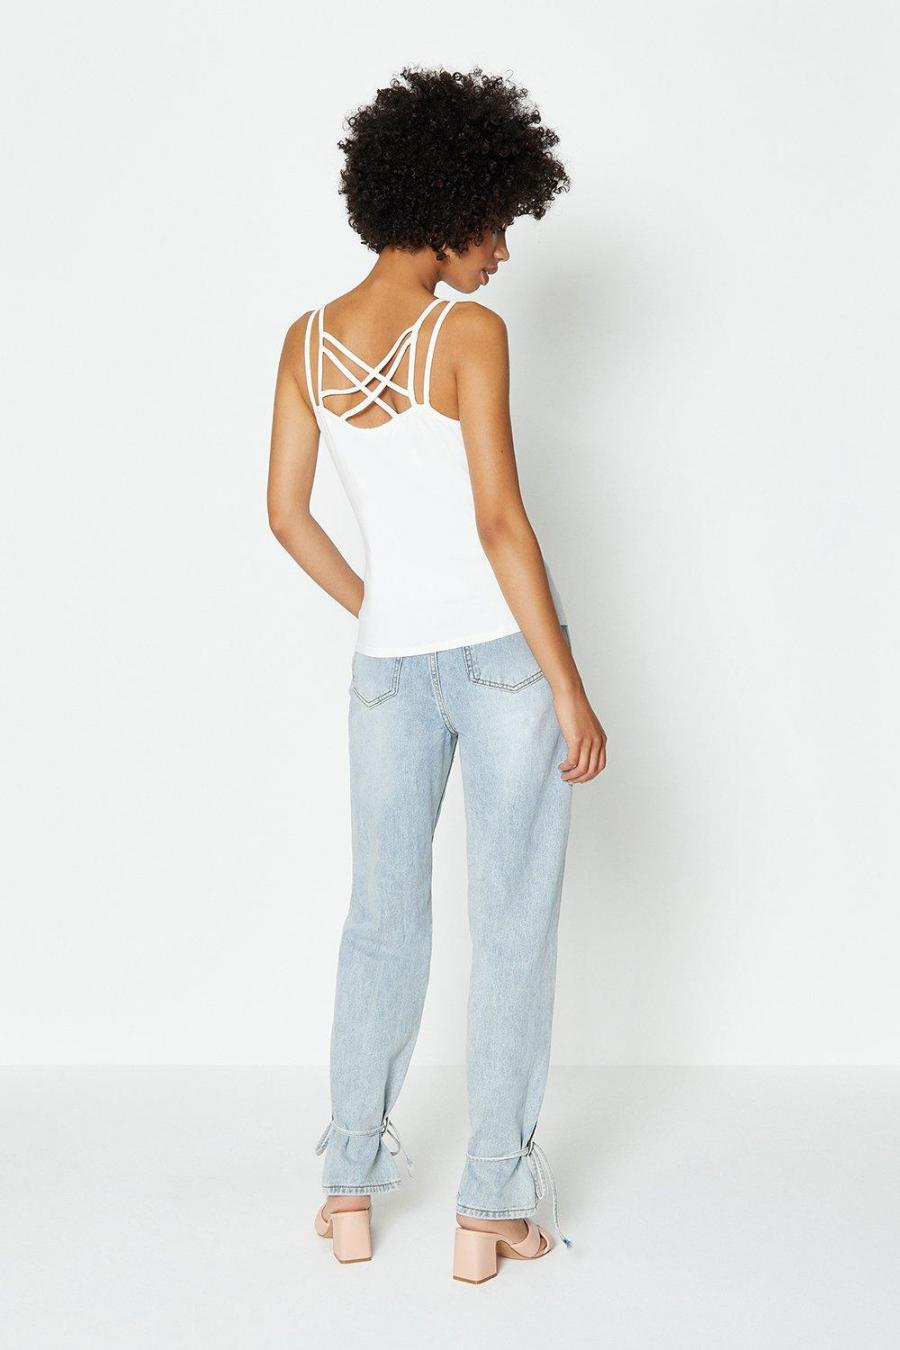 Coast Camisoles | Womens Two Strap Back Cami Ivory